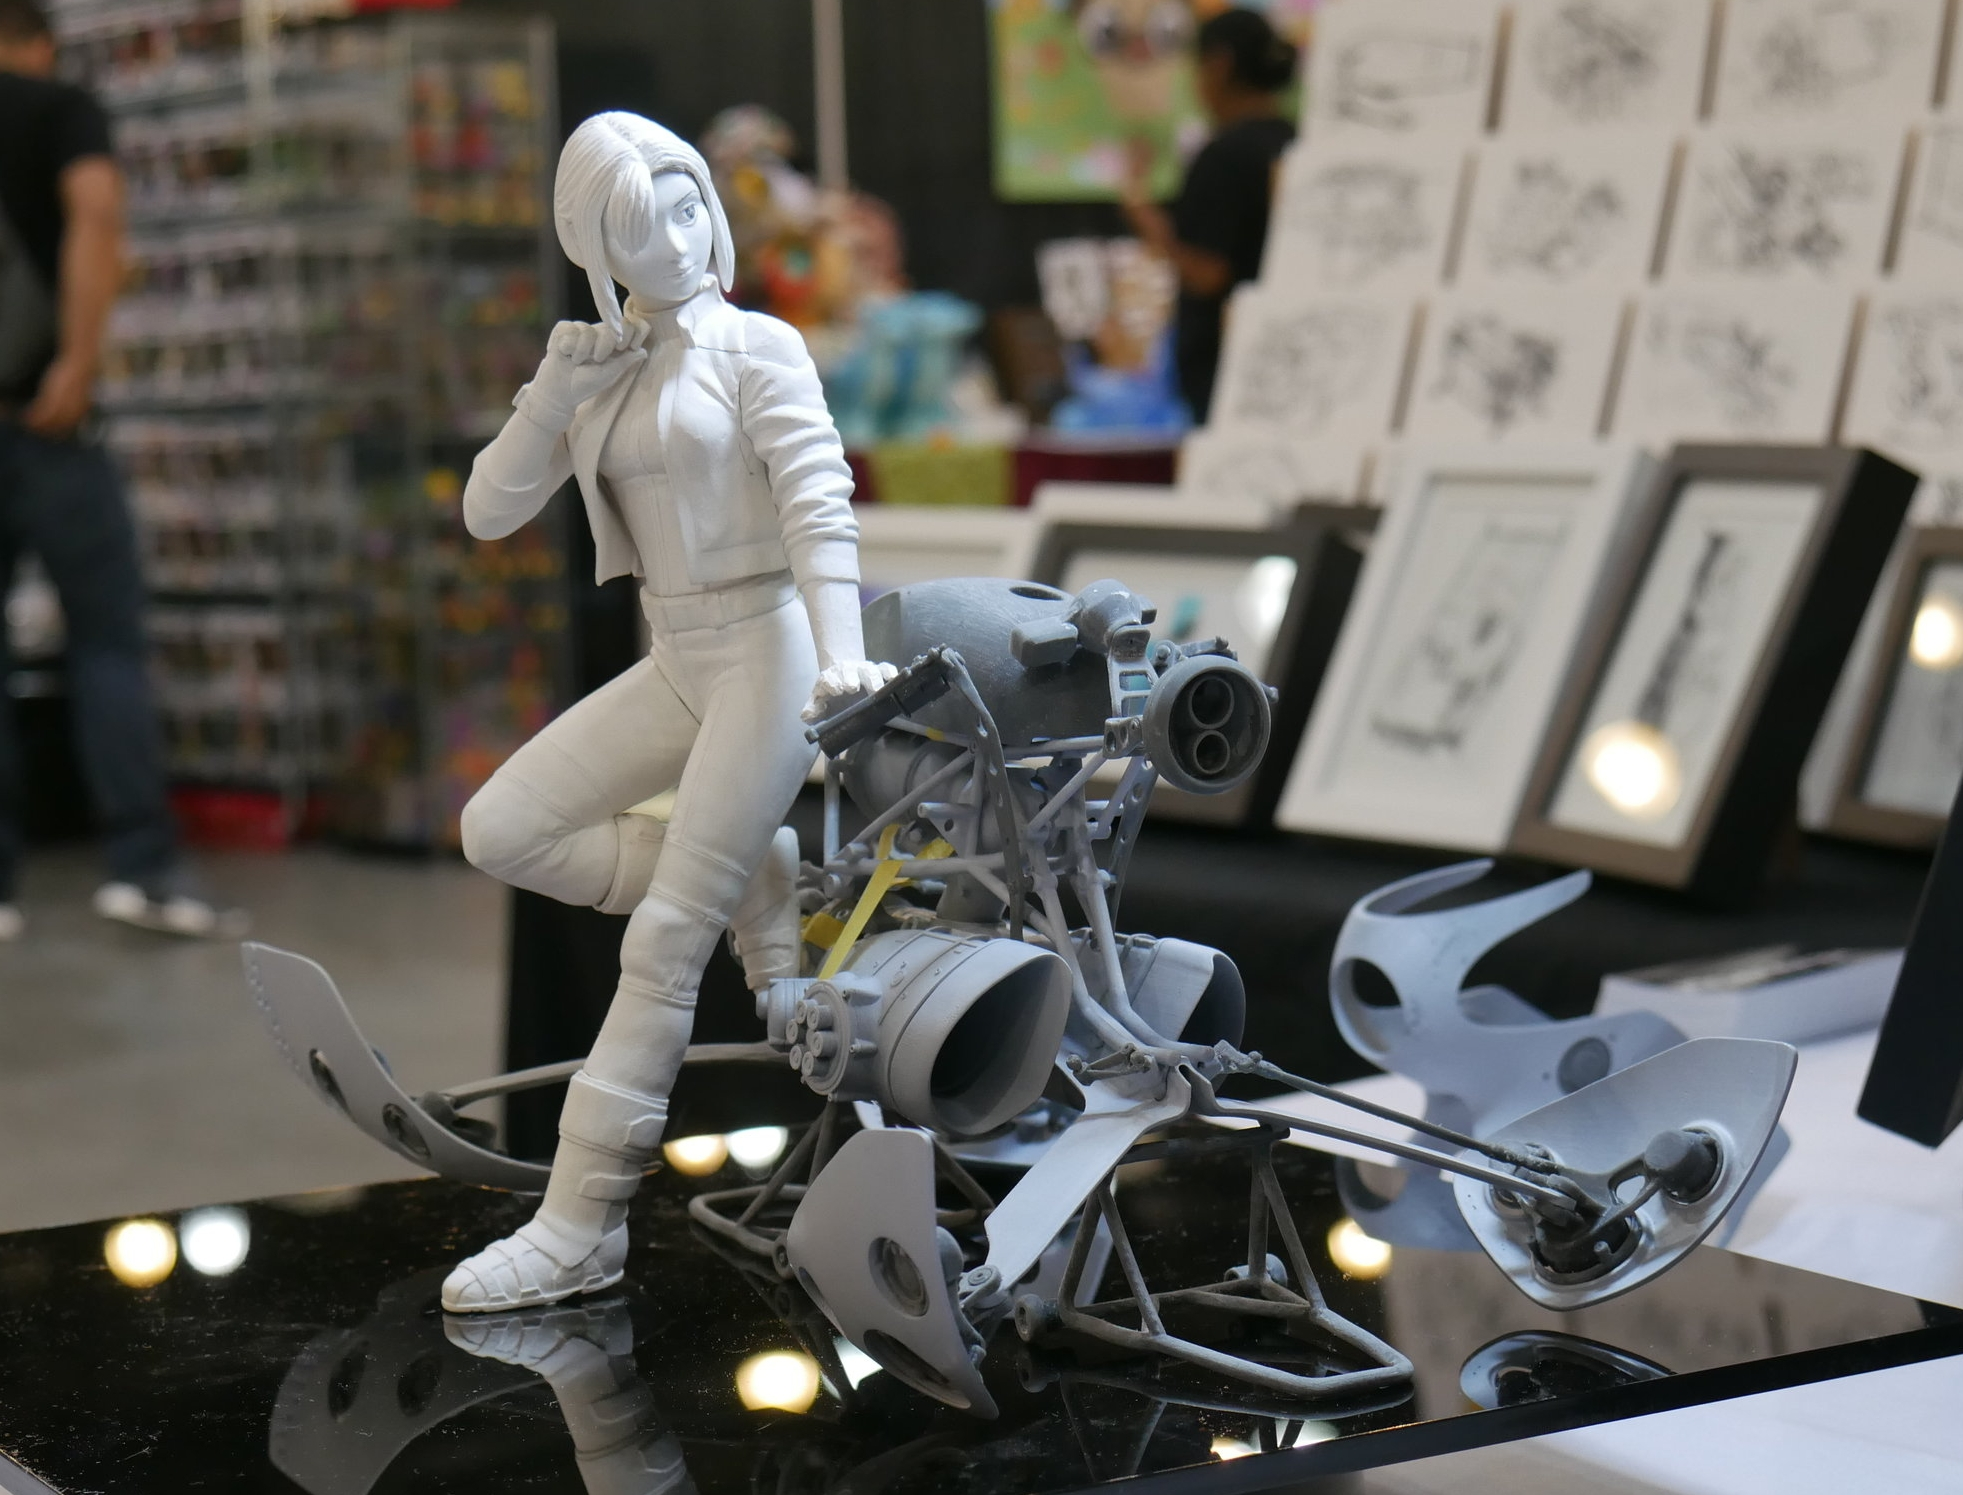 1/8th scale Resin Garage Kit - + Resin Casted Parts+ SLA 3d Printed accessories+ Water slide decals+ Hoverbike ~ 70 parts+ Ryder Figure ~ 15 parts+ Assembly Guide